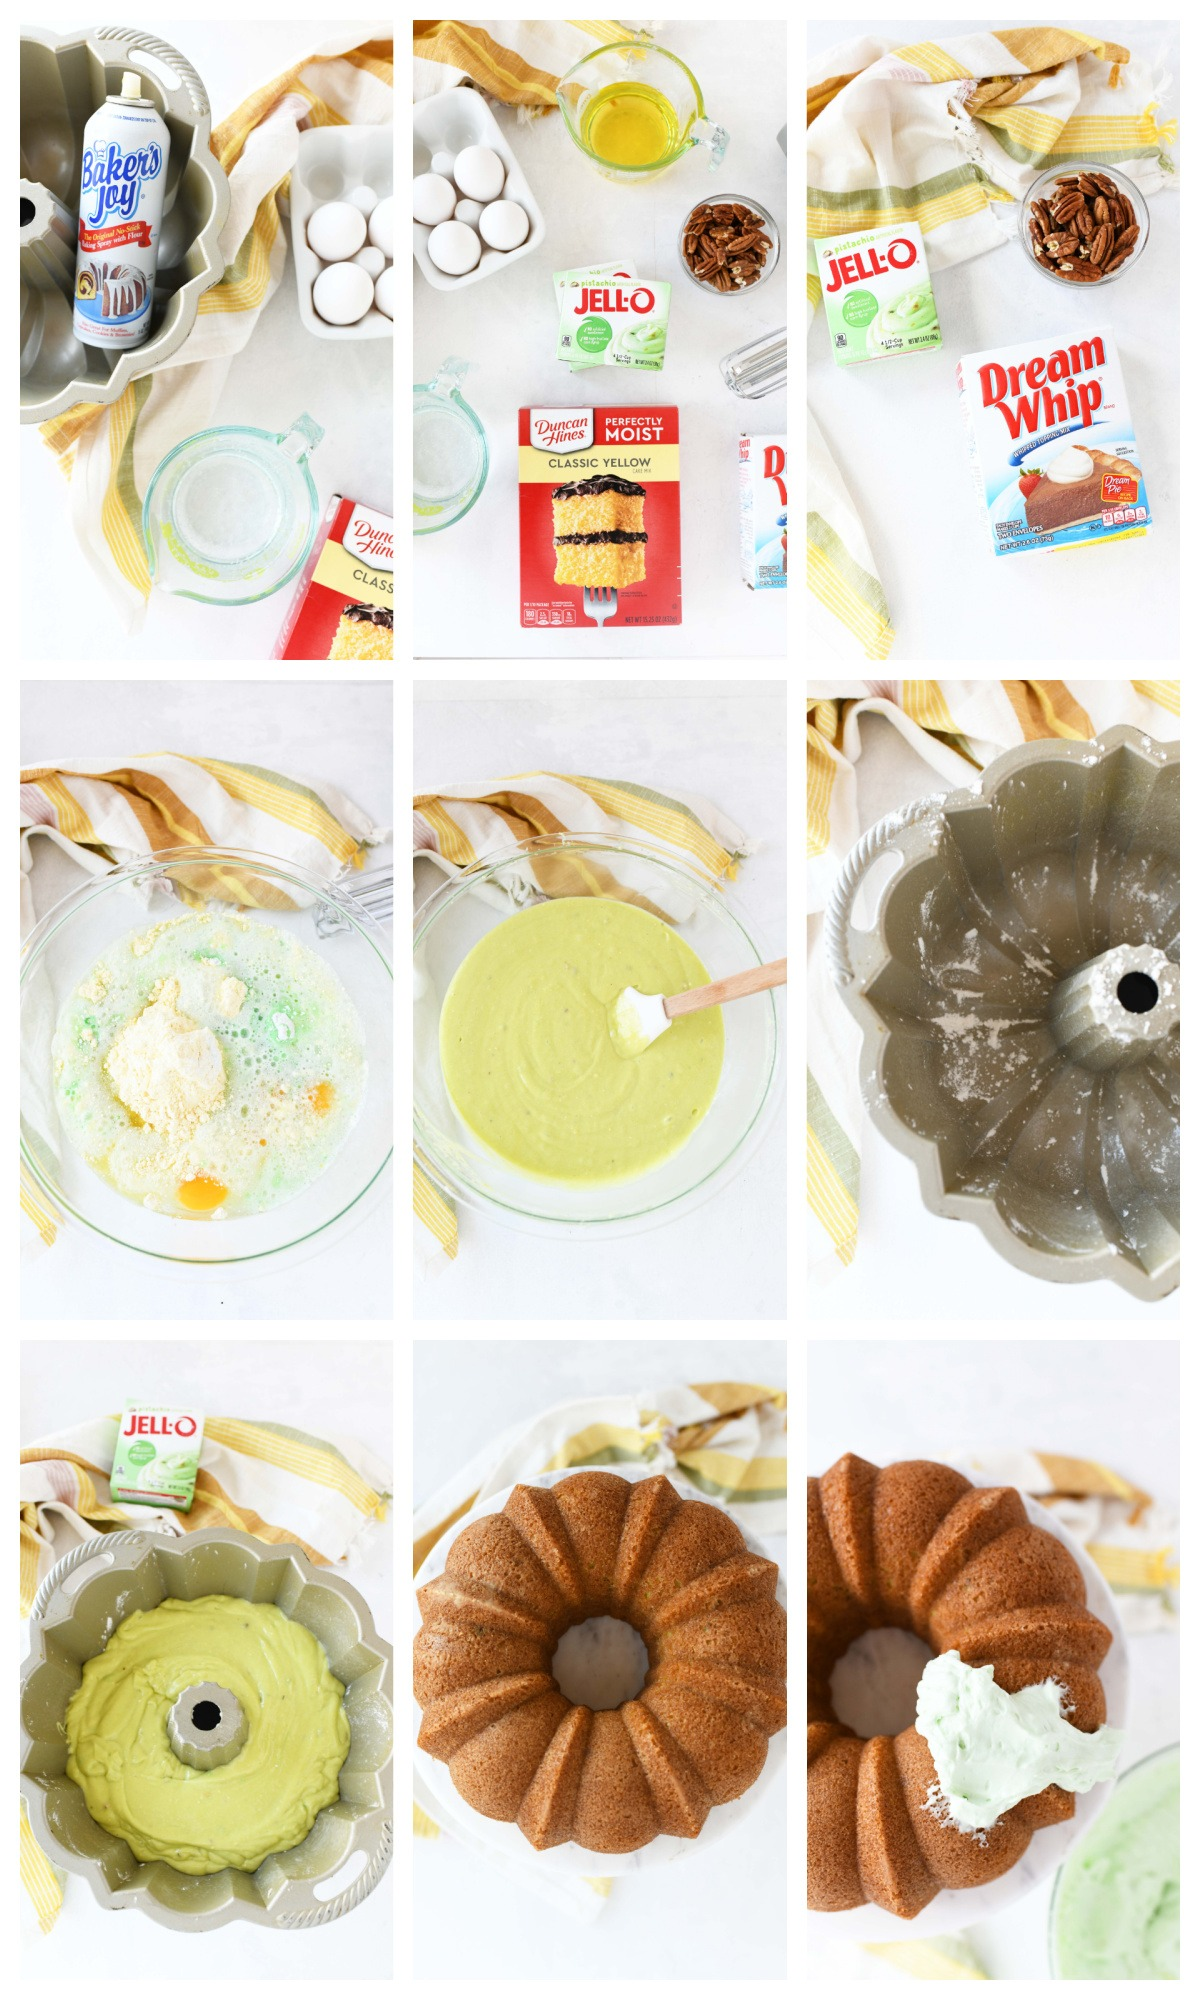 A nine image collage on how to make pistachio pudding cake.